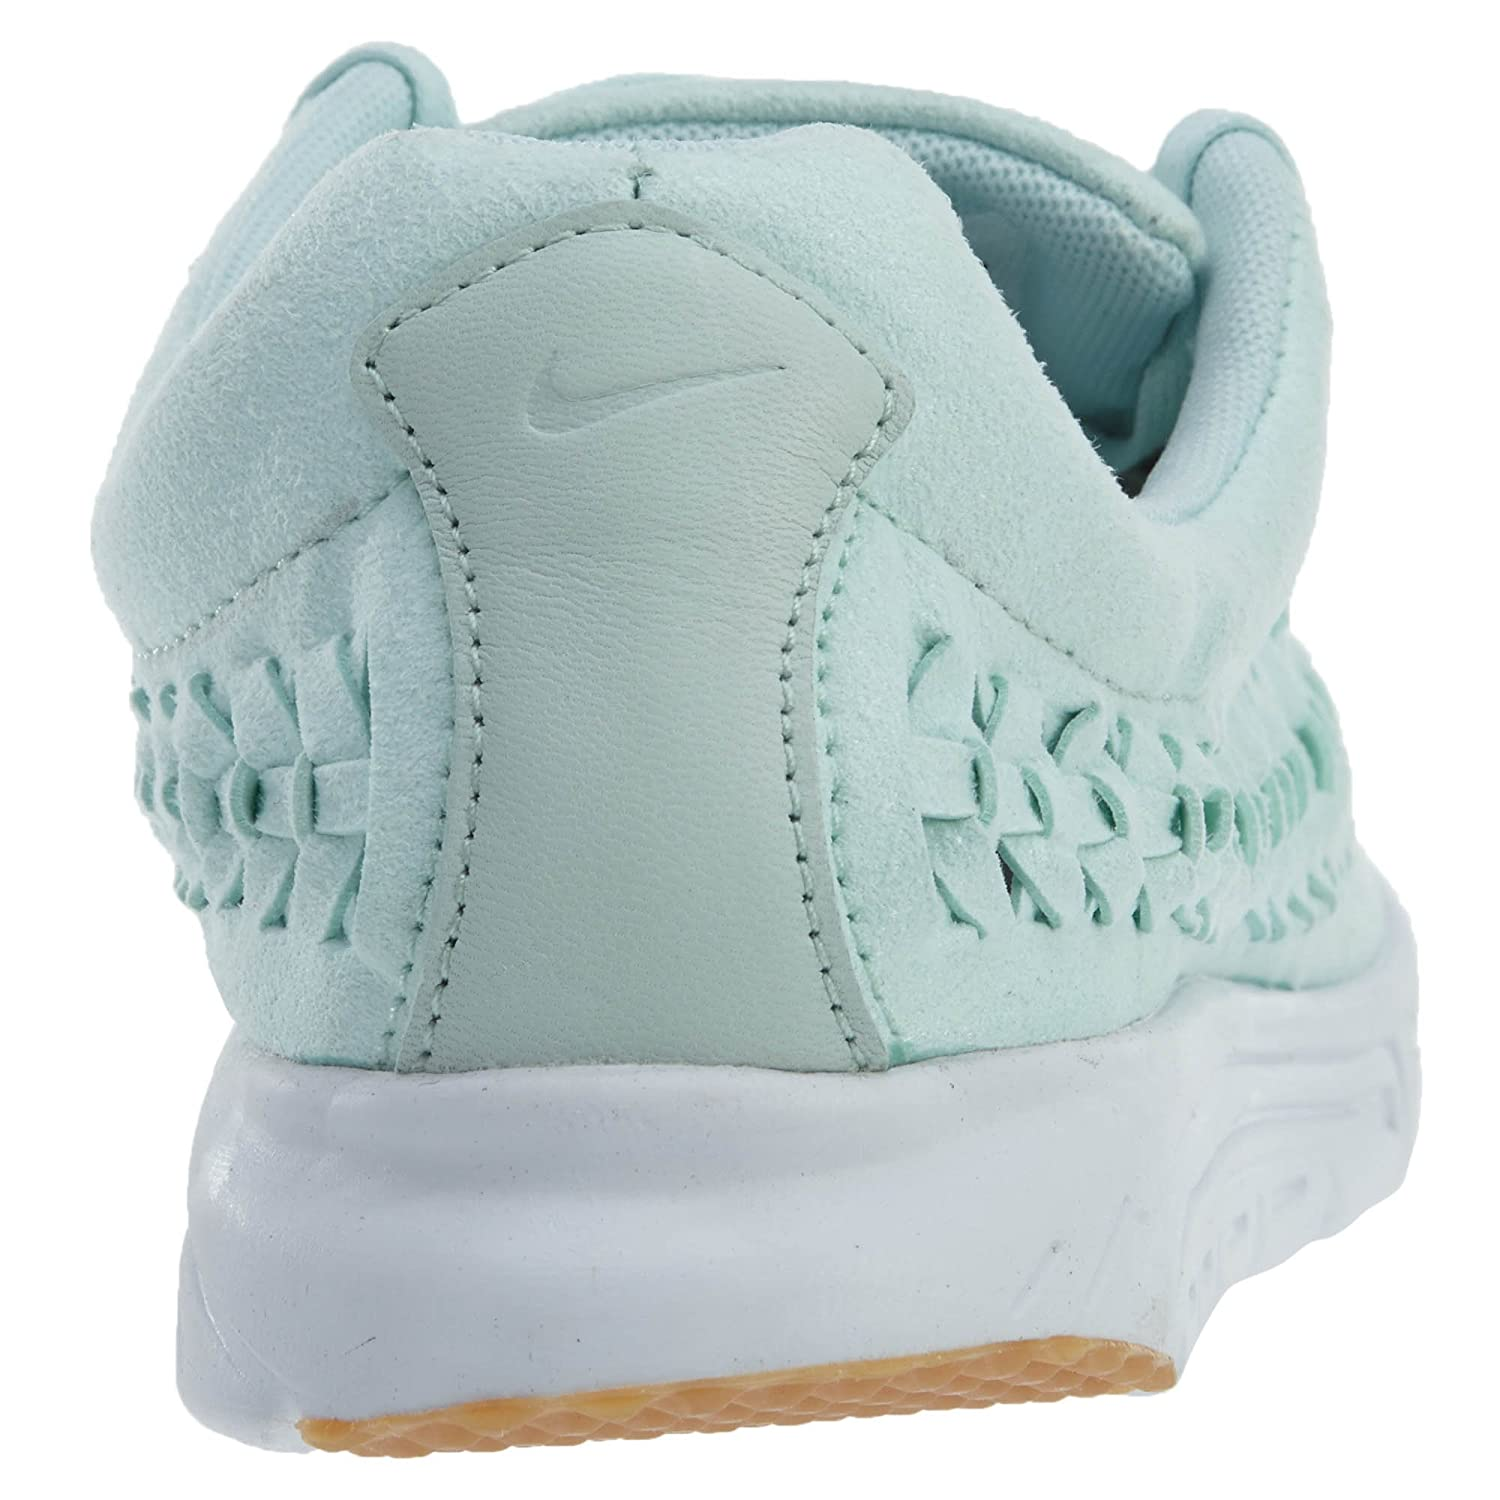 separation shoes 6d8e9 a565e Nike Mayfly Woven Qs Womens  Amazon.ca  Shoes   Handbags